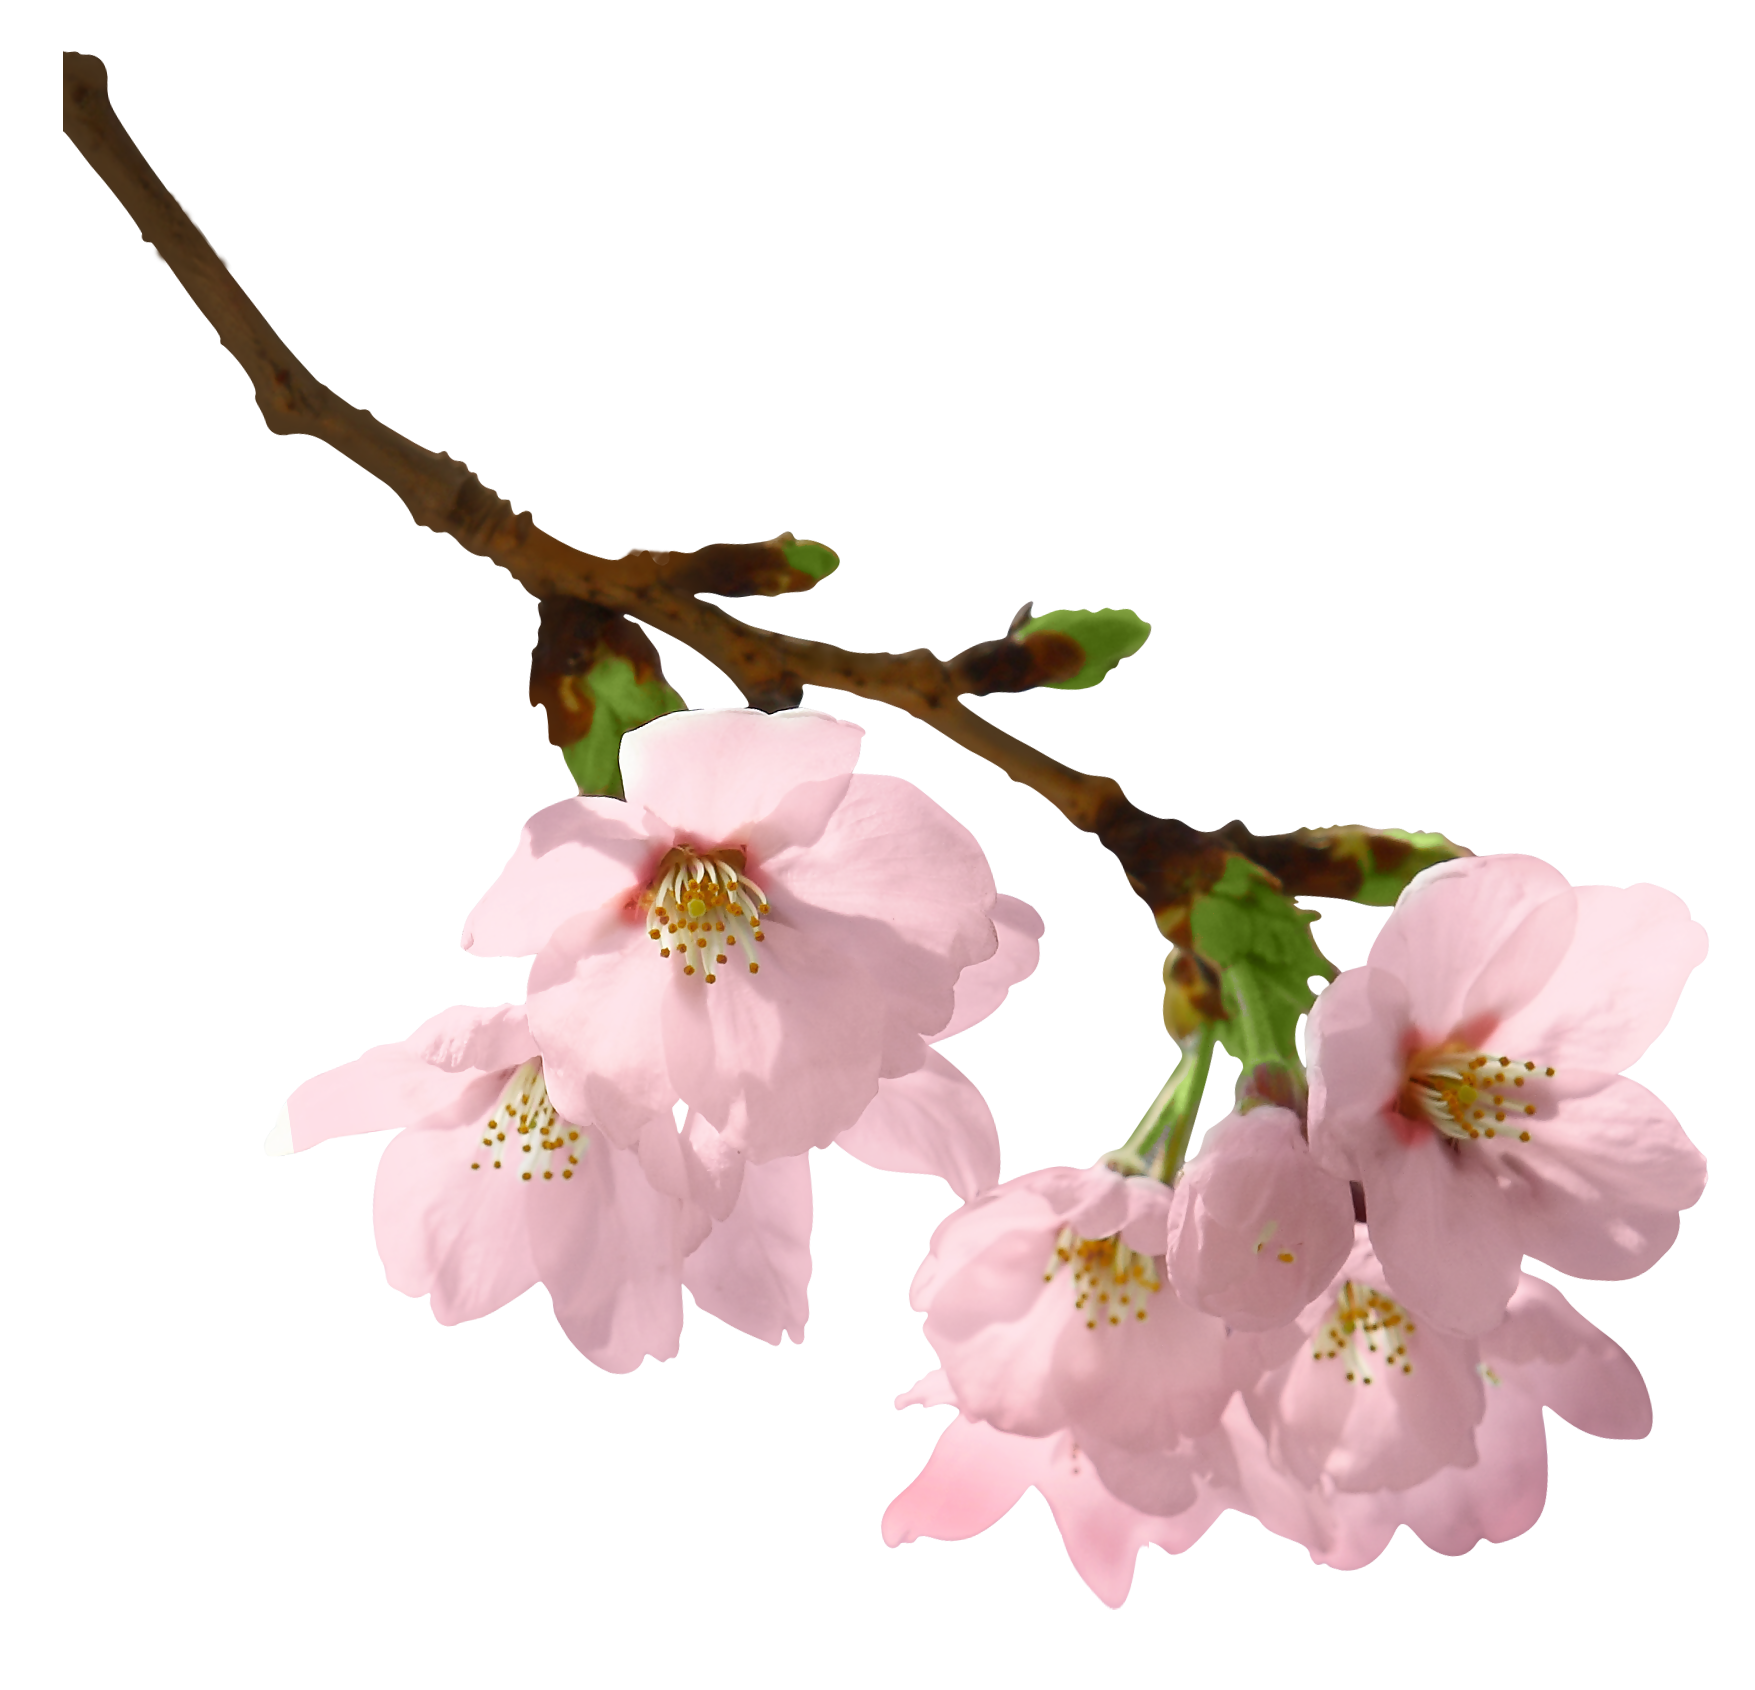 Spring picture leaves branches. Flower branch png